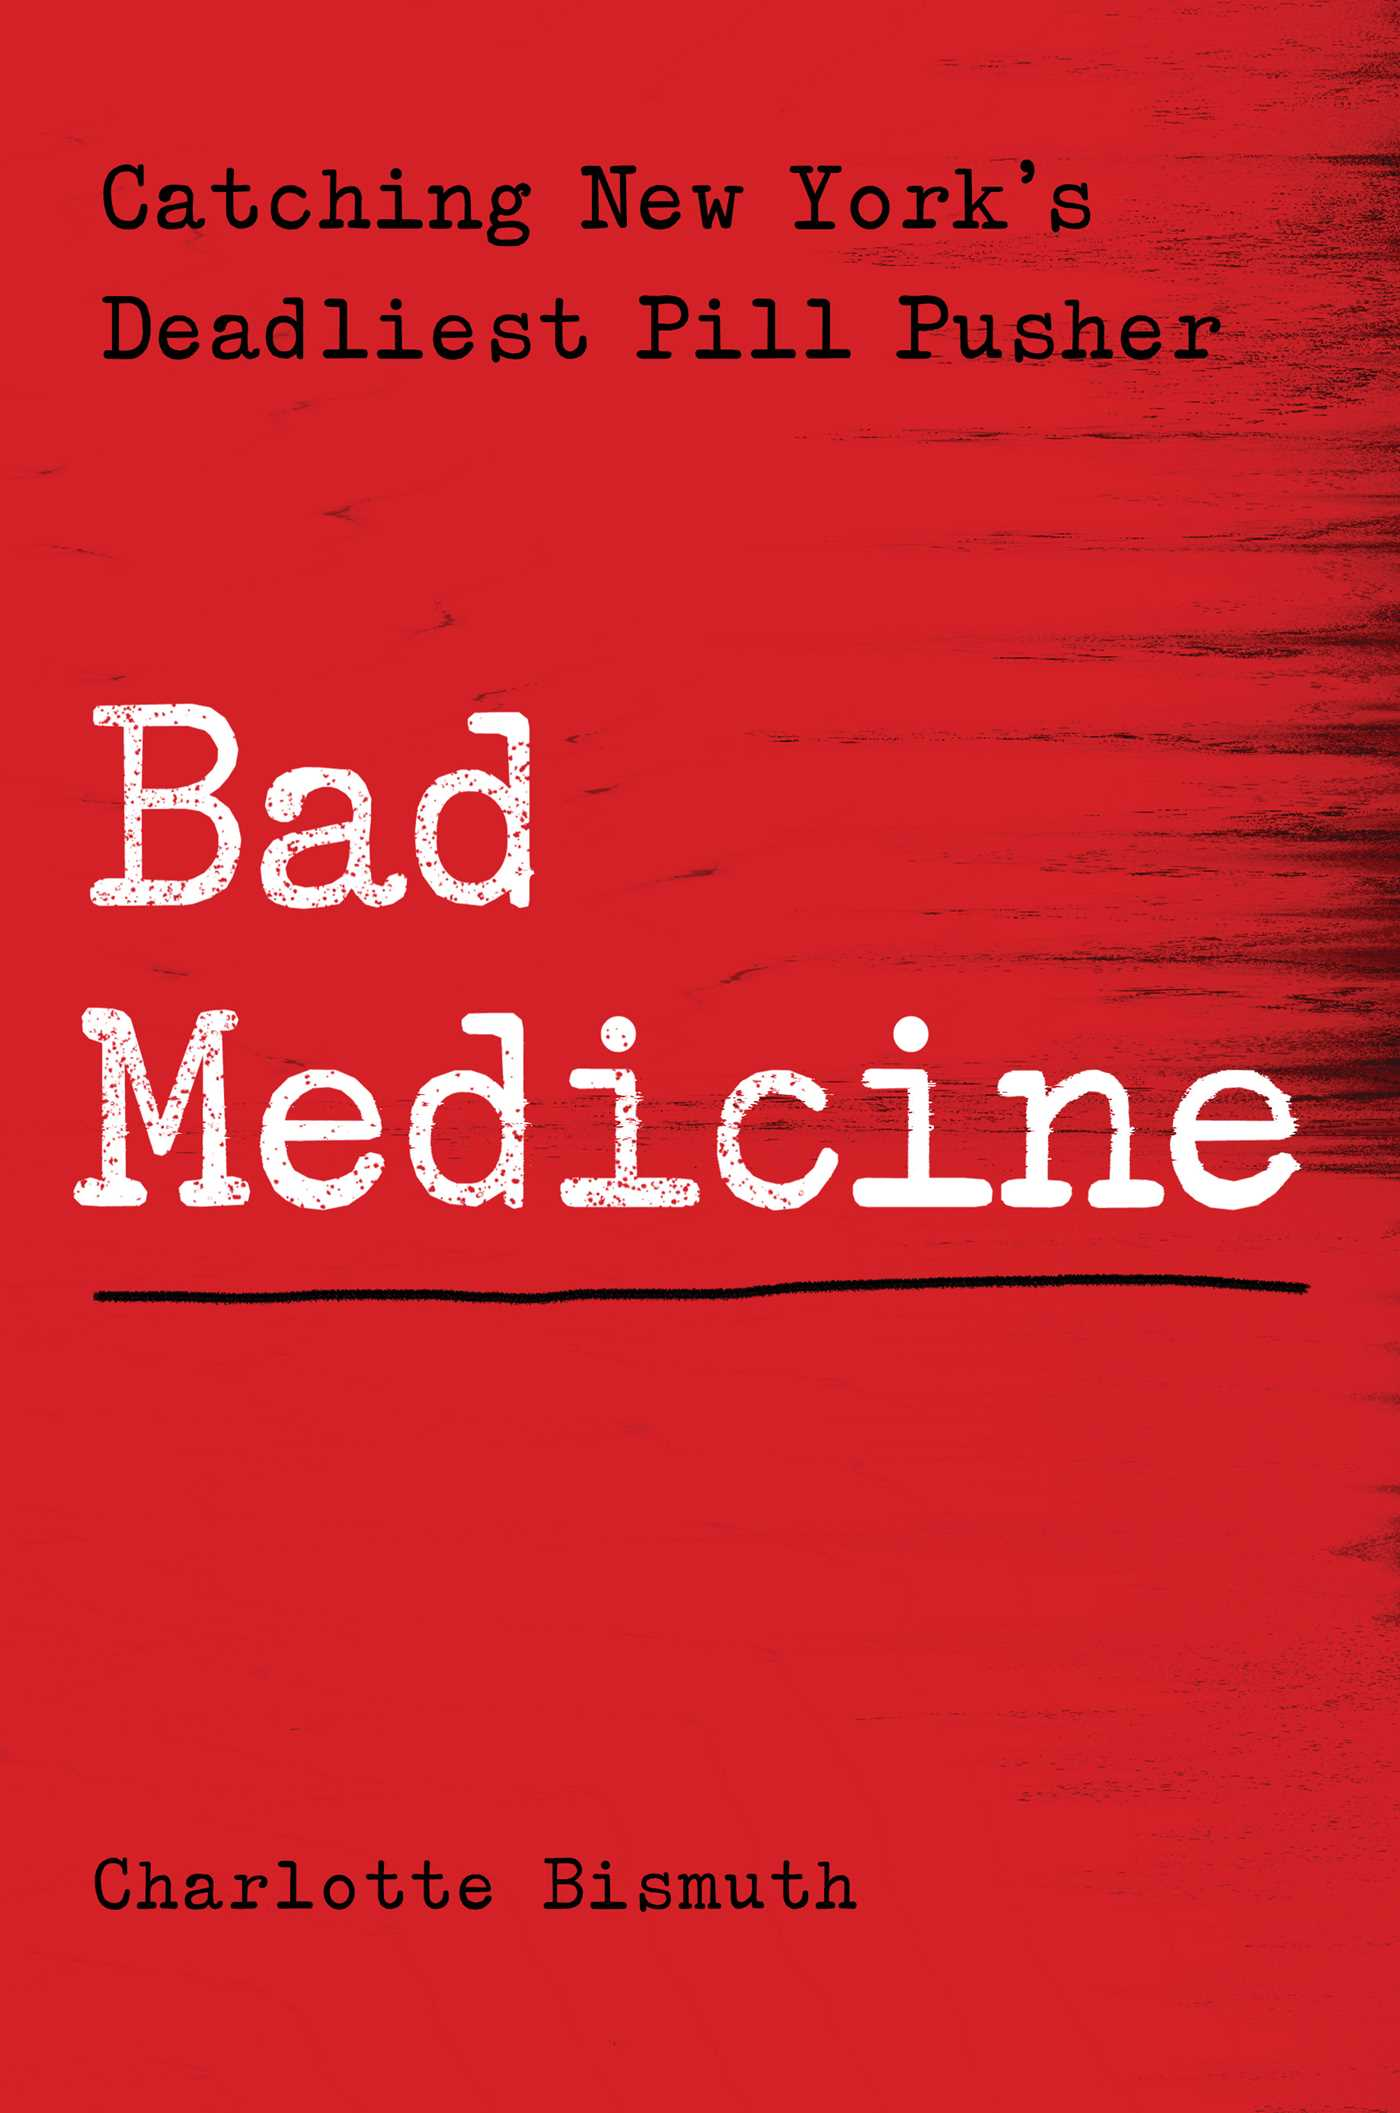 Bad Medicine: Catching New York's Deadliest Pill Pusher by Charlotte Bismuth